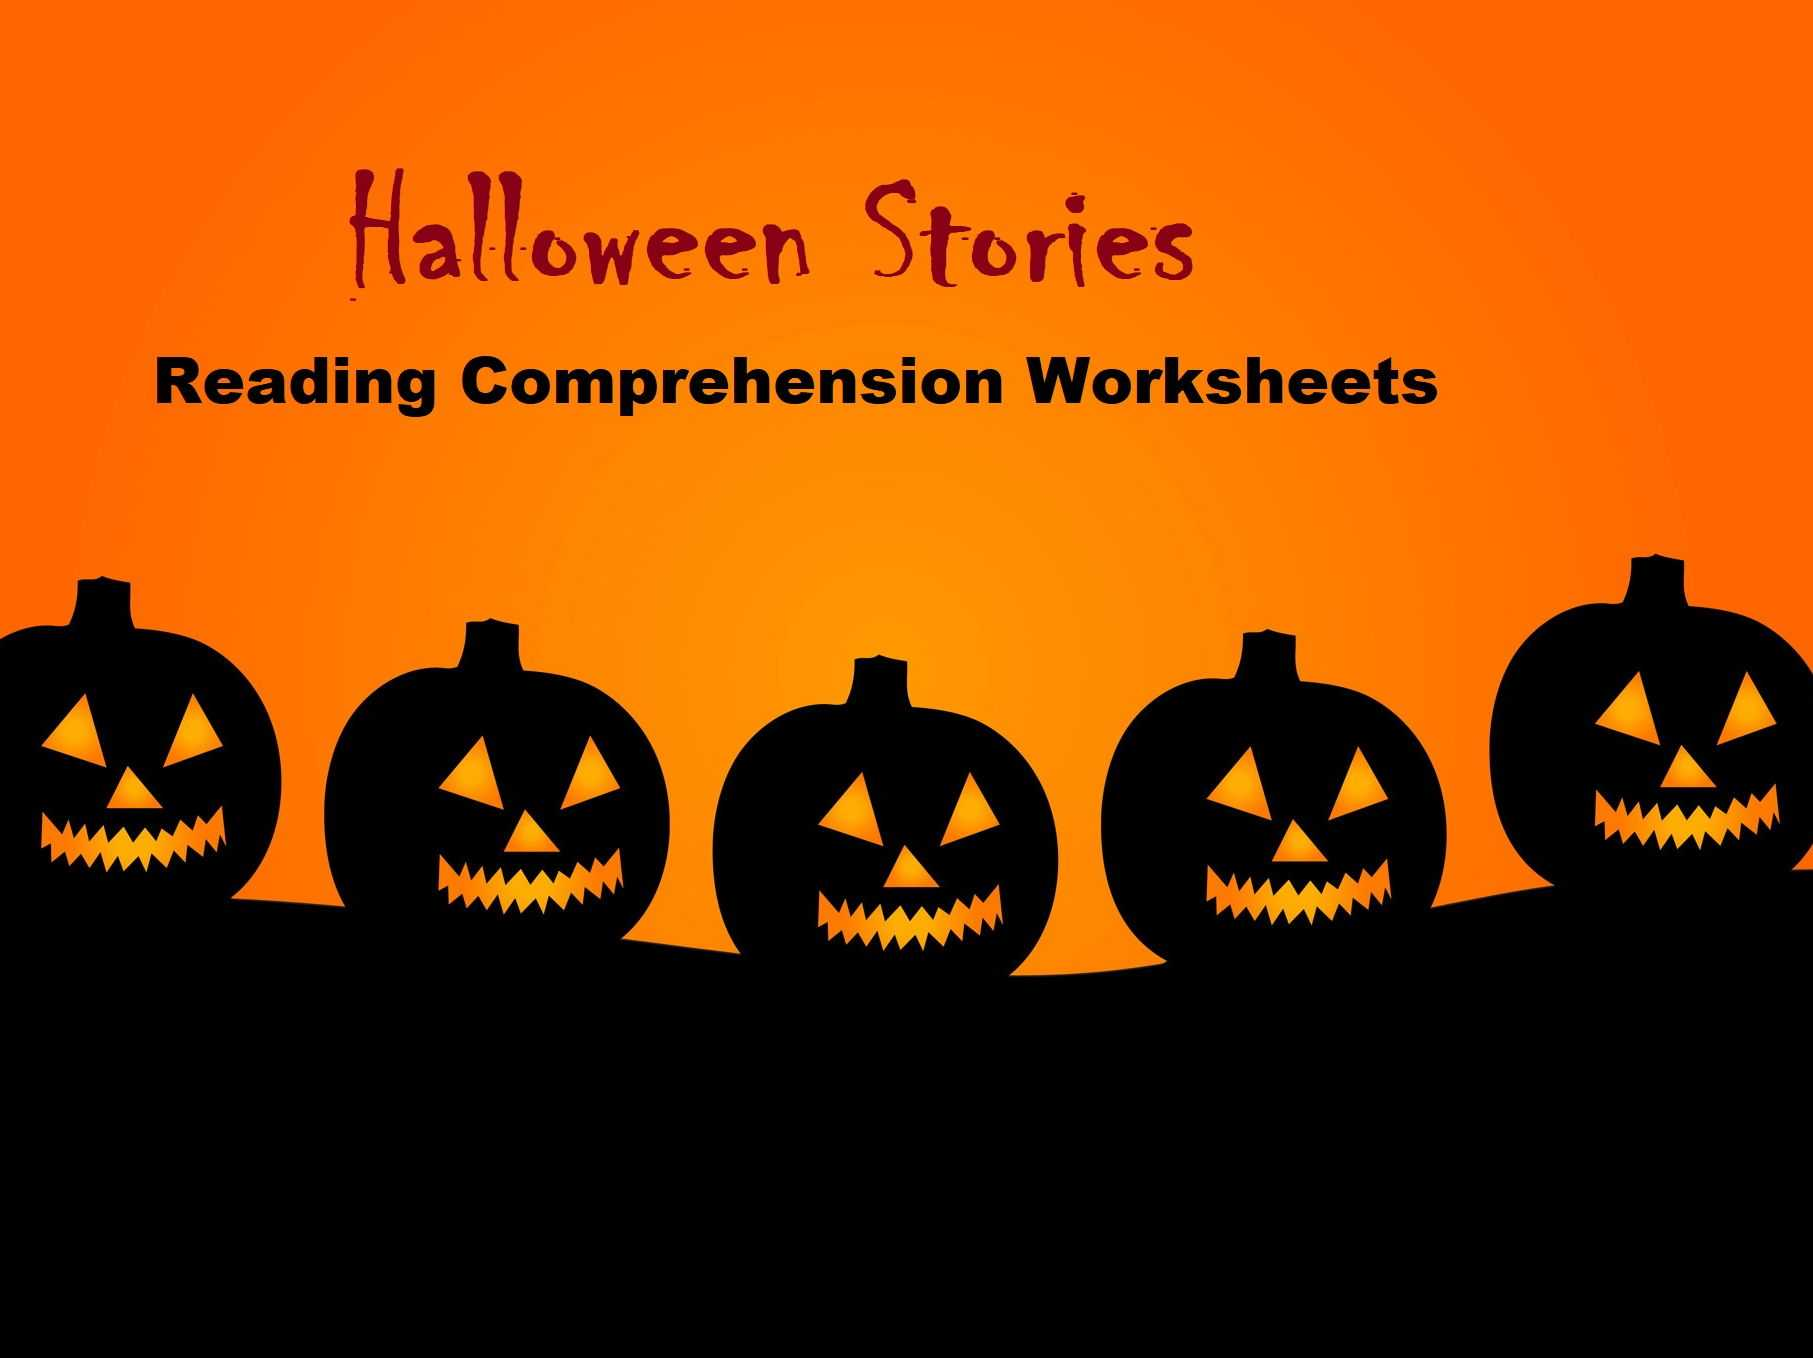 Story Elements Worksheet Pdf Along with Halloween Stories Reading Prehension Worksheets Save by